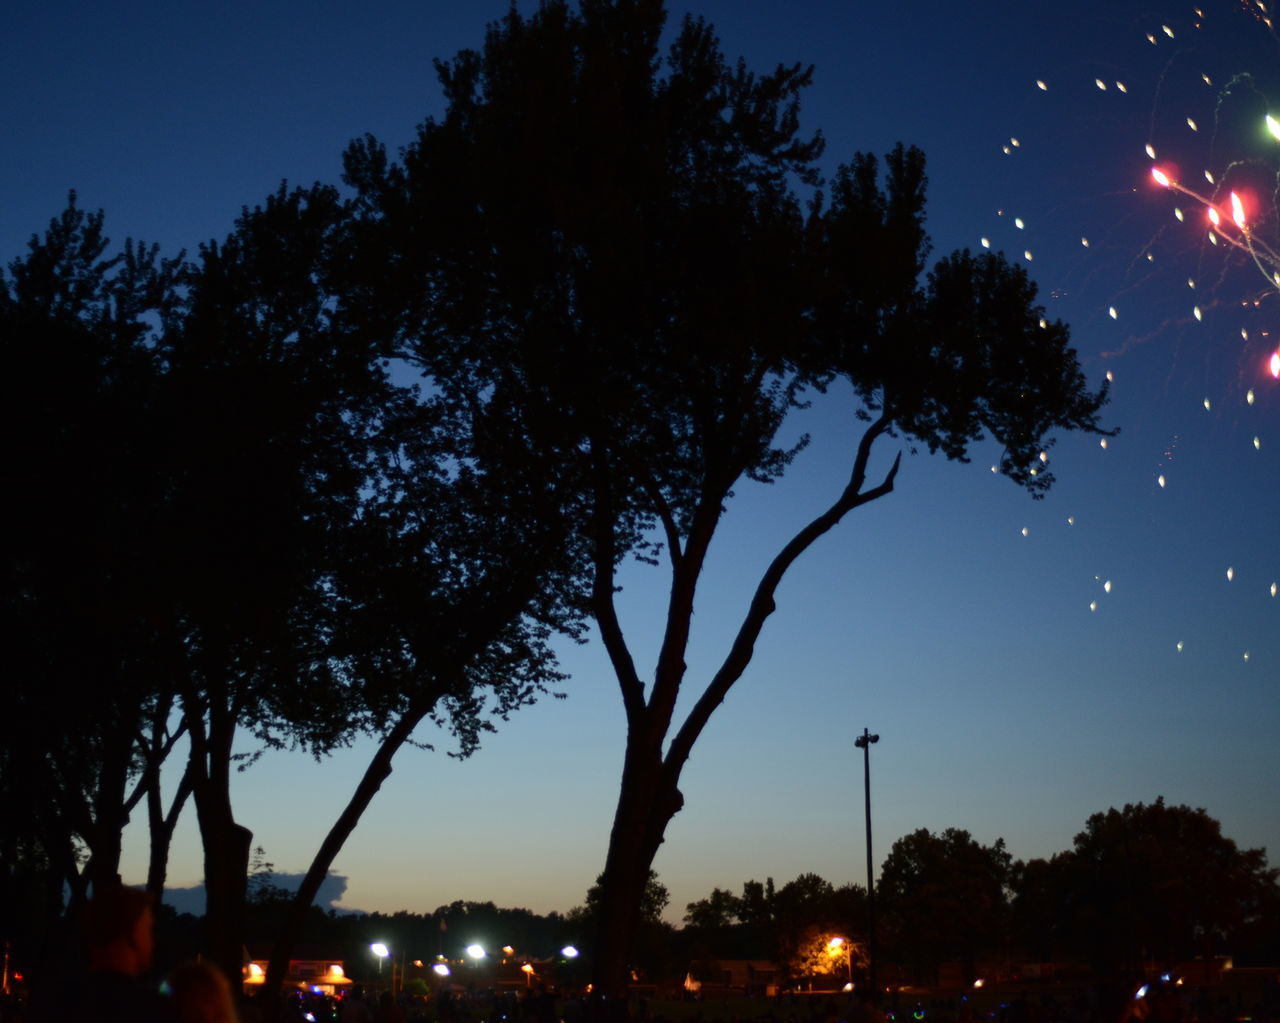 Low Angle View Of Firework Display And Silhouette Trees At Night